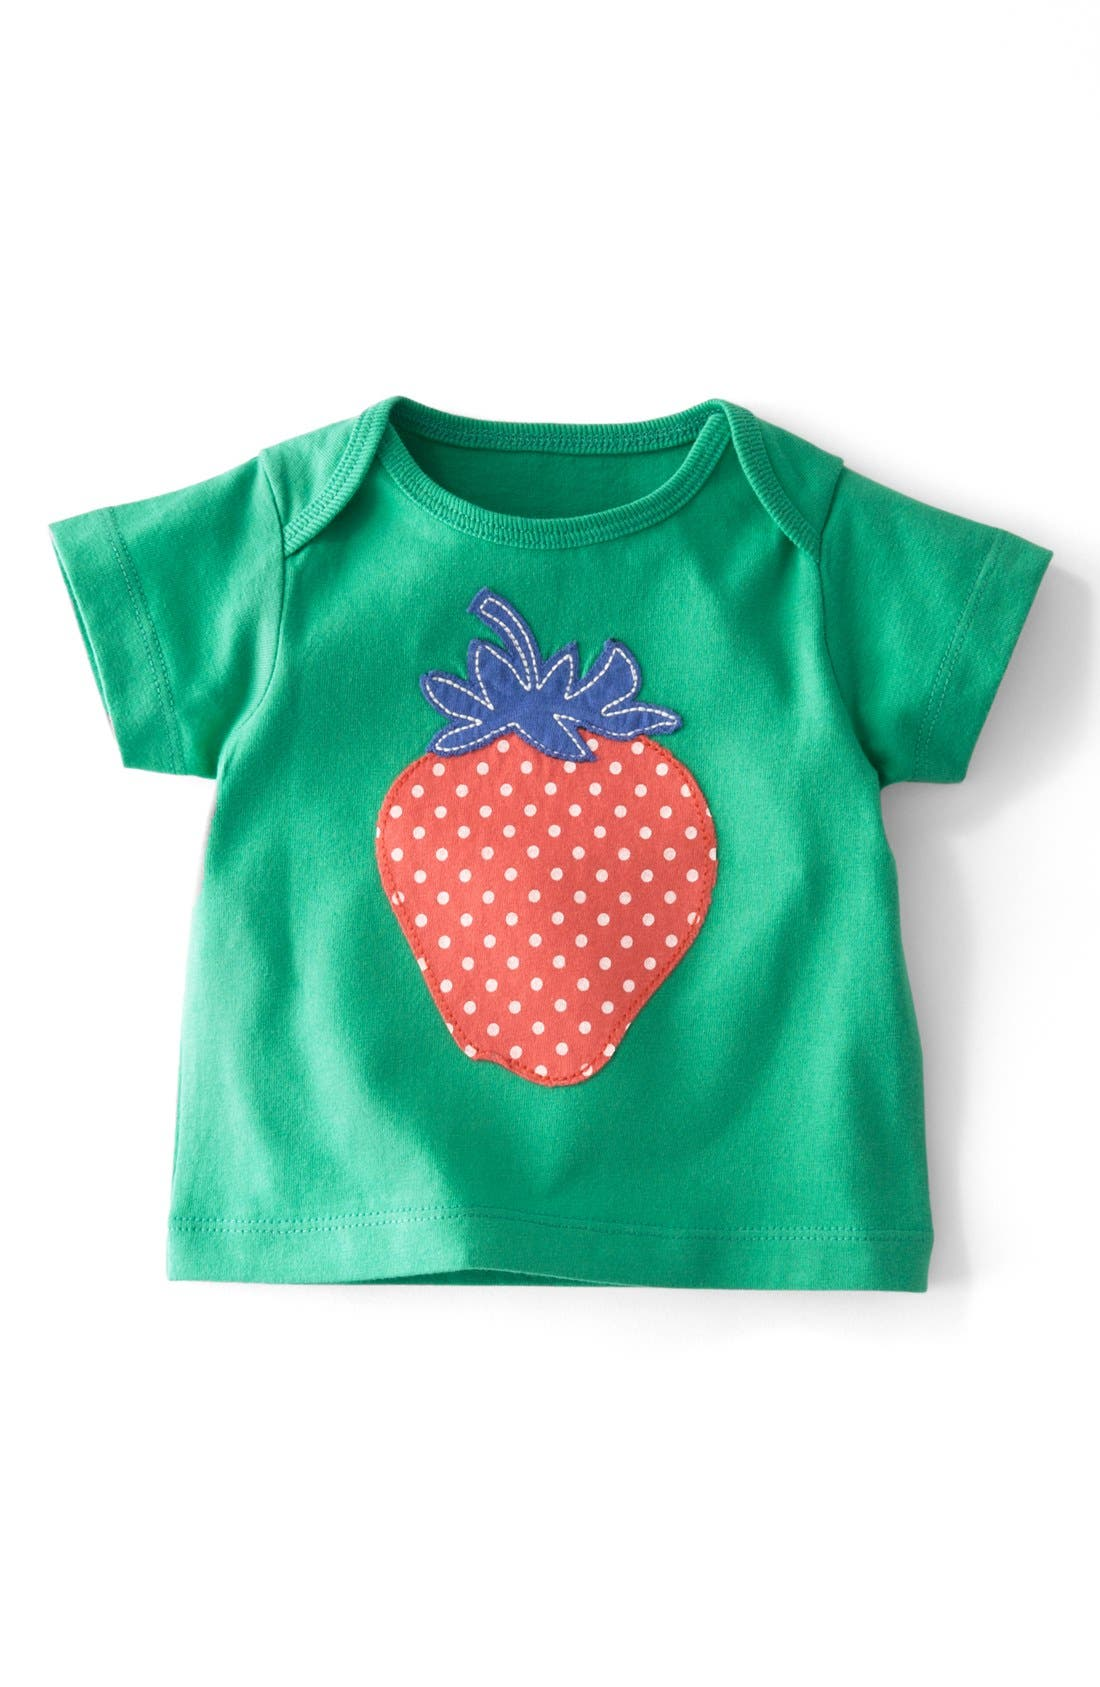 Alternate Image 1 Selected - Mini Boden 'Sunny Appliqué' Tee (Baby Girls)